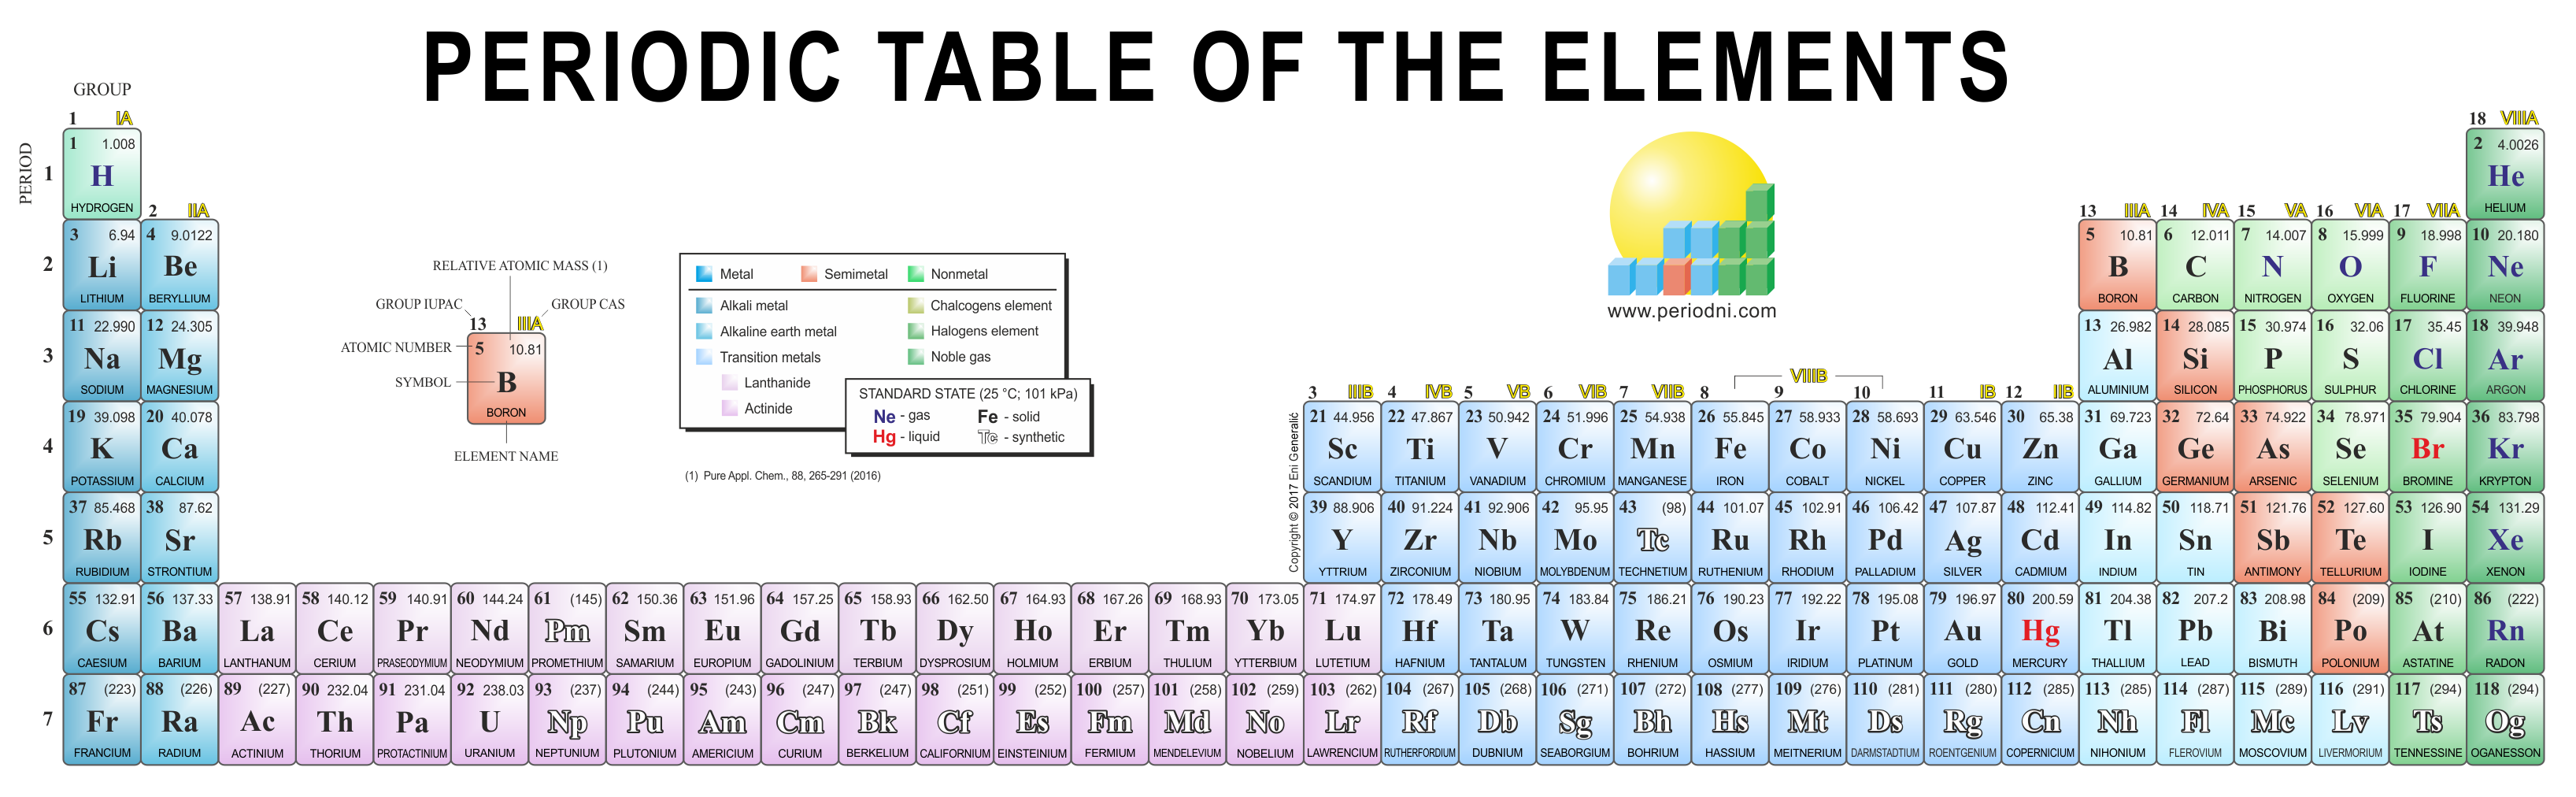 Chemistry images gallery 32 column periodic table gamestrikefo Gallery